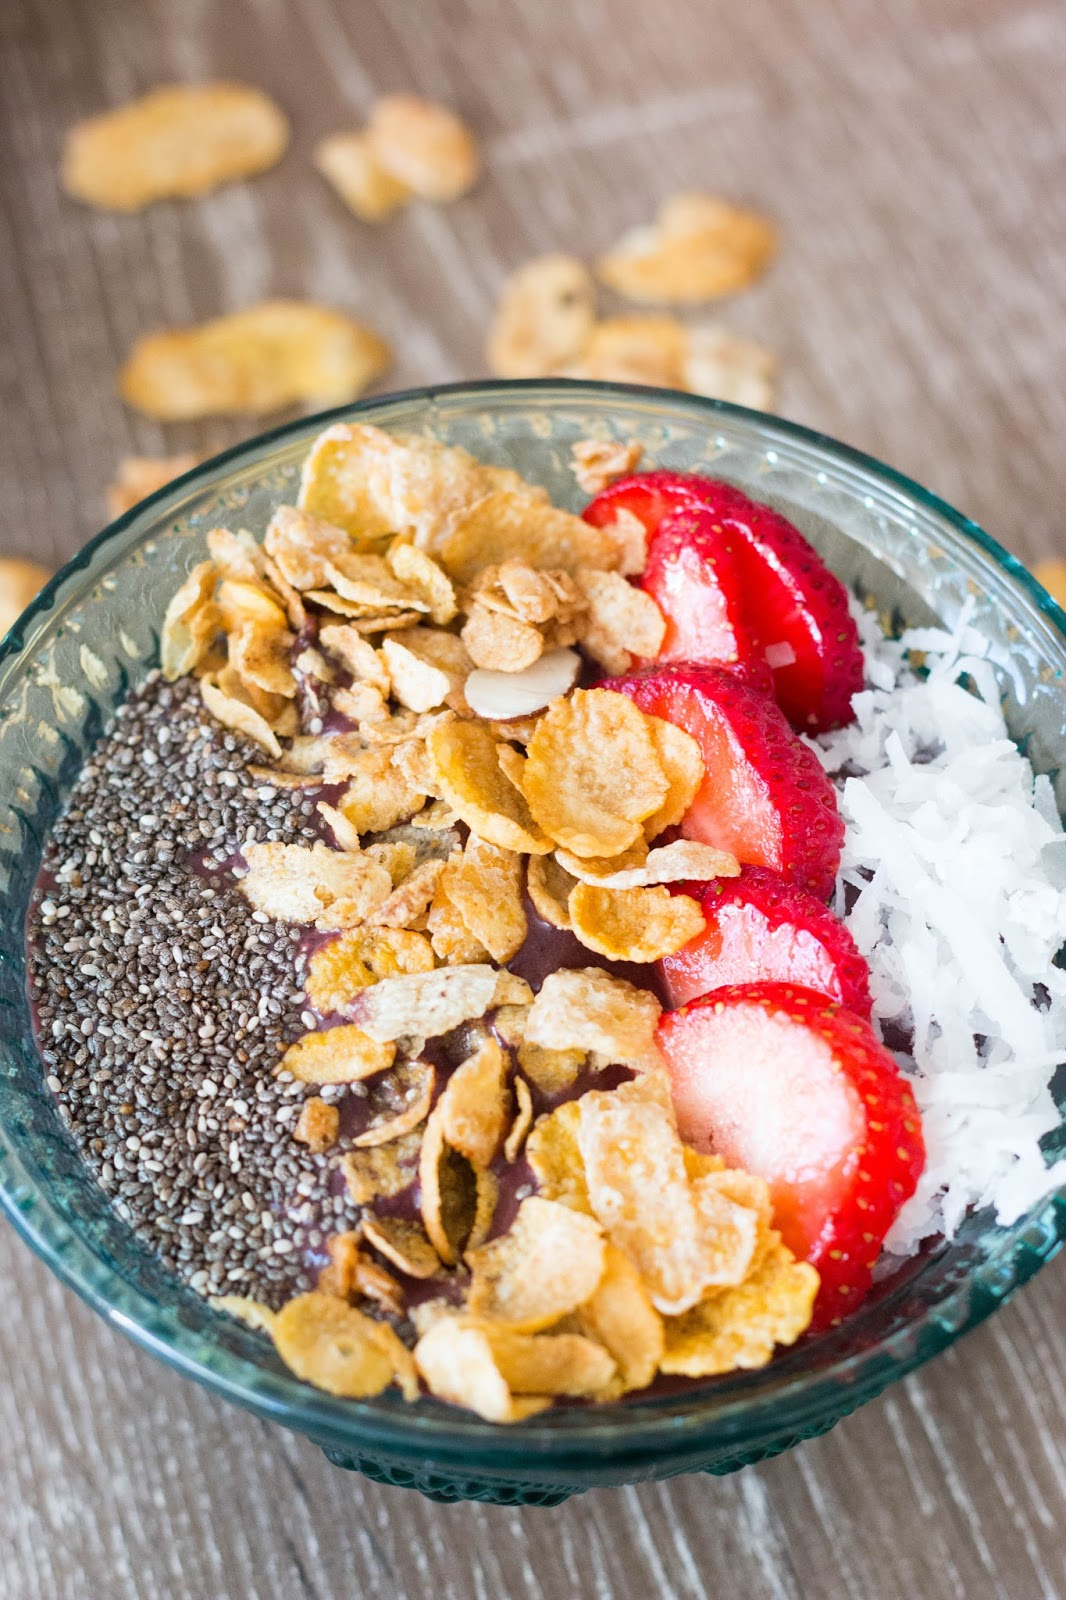 Acai bowl recipe with acas powder. Acai bowl vegan. Costco acai bowl recipe. Blenders acas bowl. Hawaiian acai bowl recipe. Robeks acas bowl recipe. Juice it up acai bowl recipe. Low calorie acai bowl recipe.